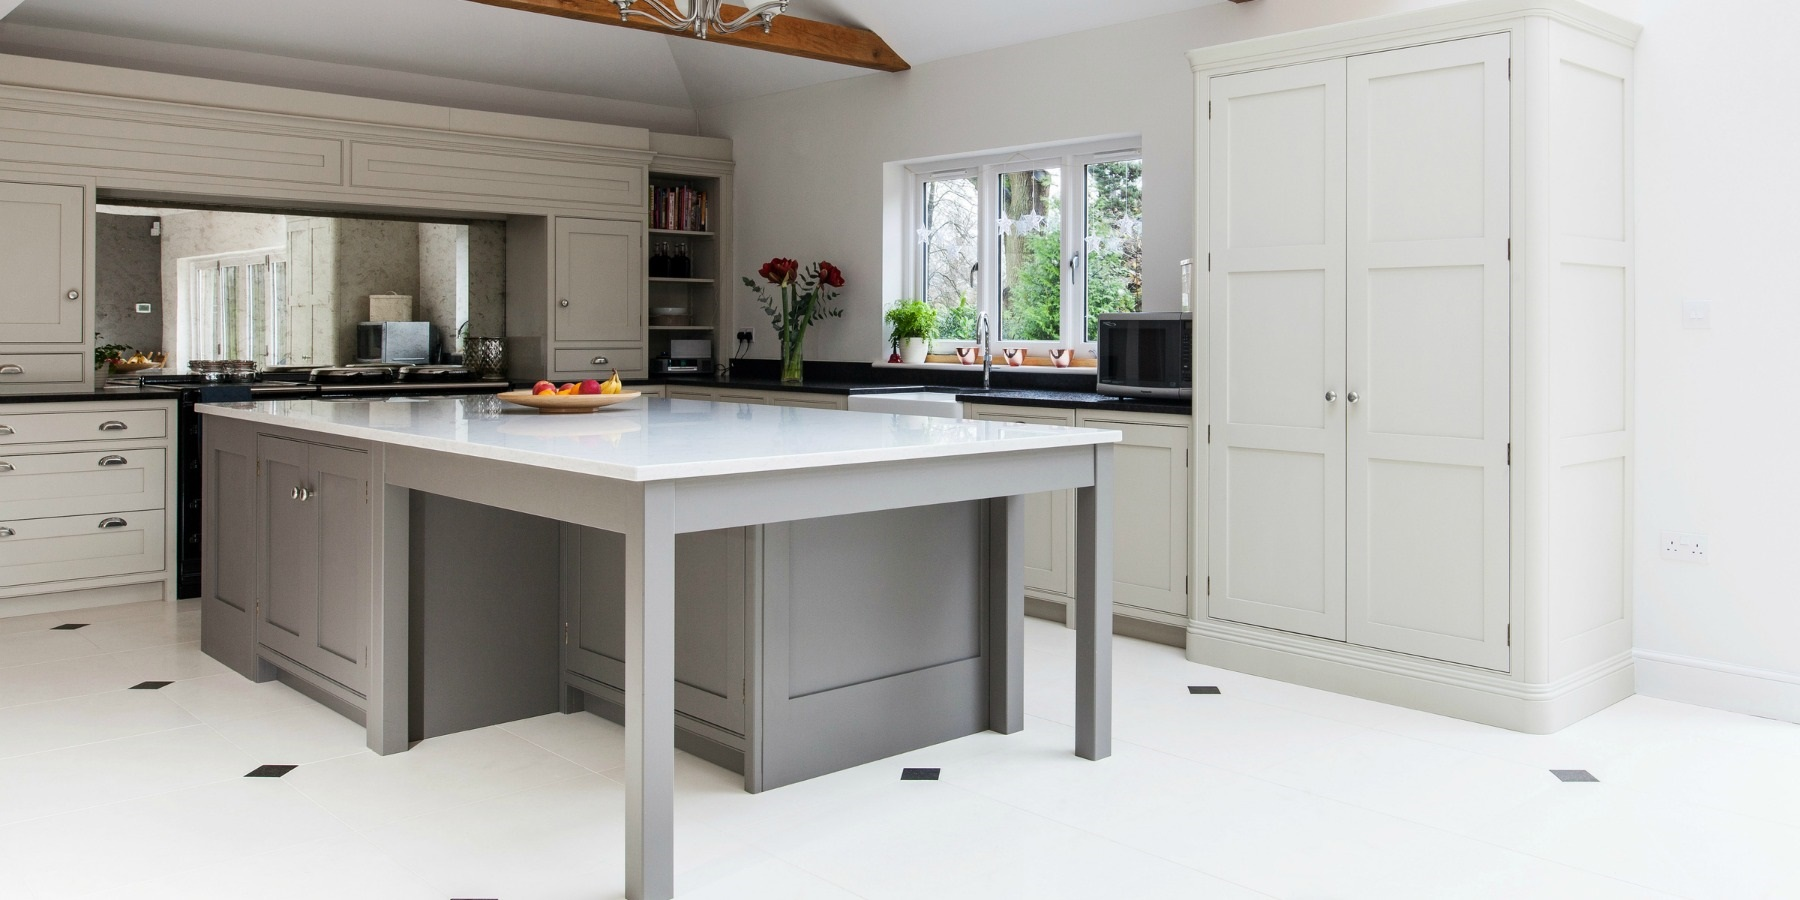 Organised functional and modern kitchen design for a new build Kitchen design of sevenoaks